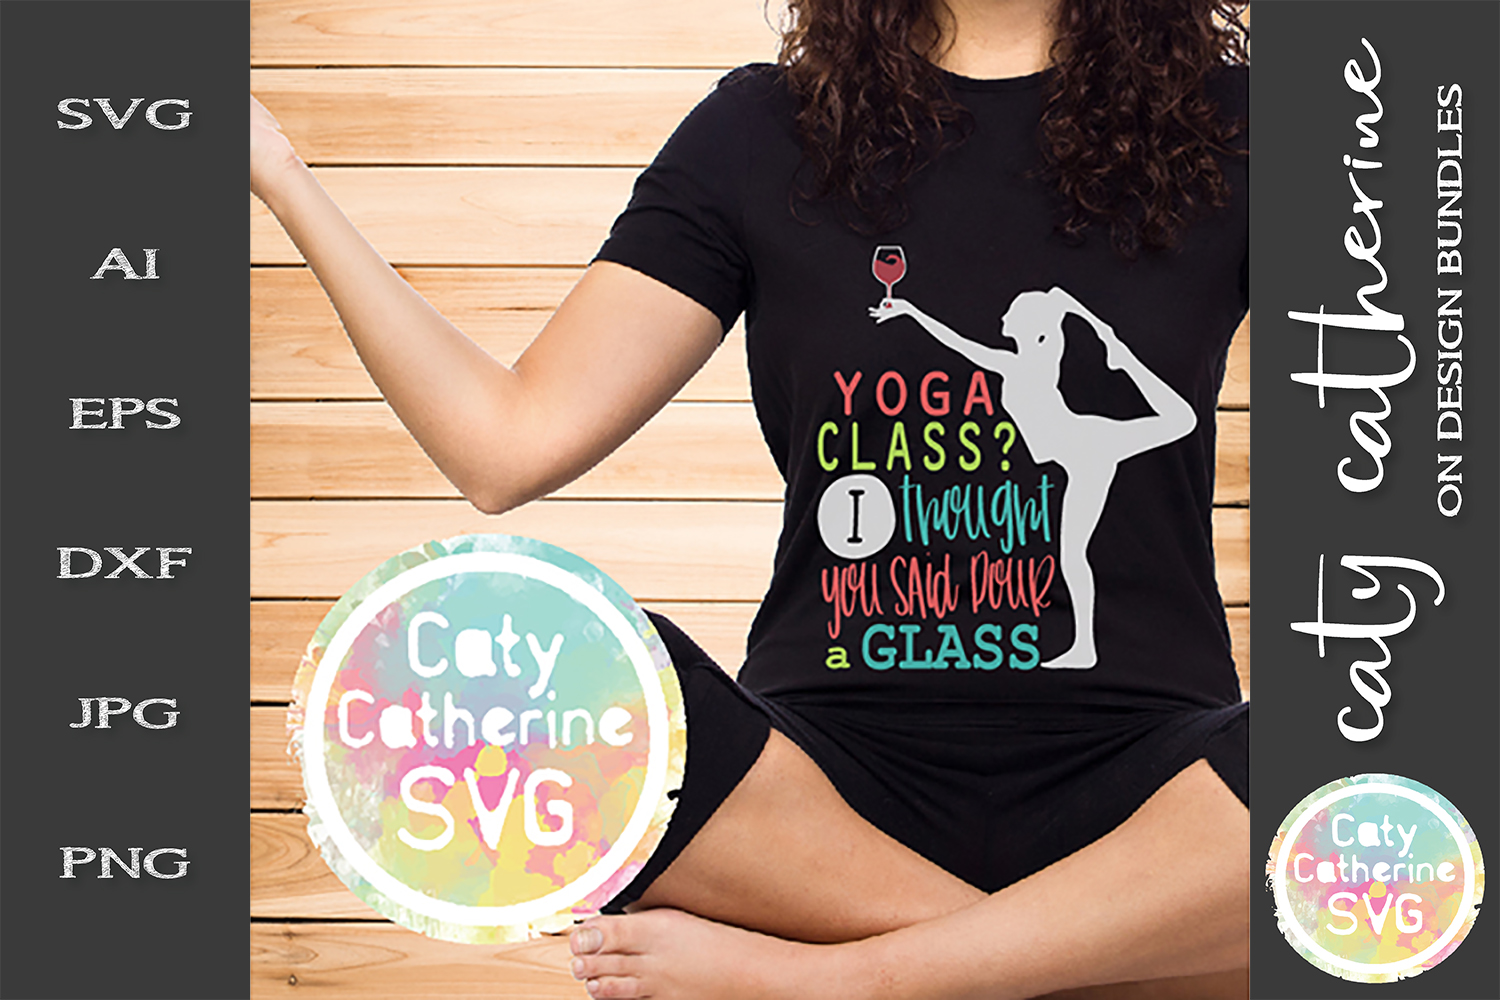 Yoga Class? I Thought You Said Pour A Glass SVG Cut File example image 1